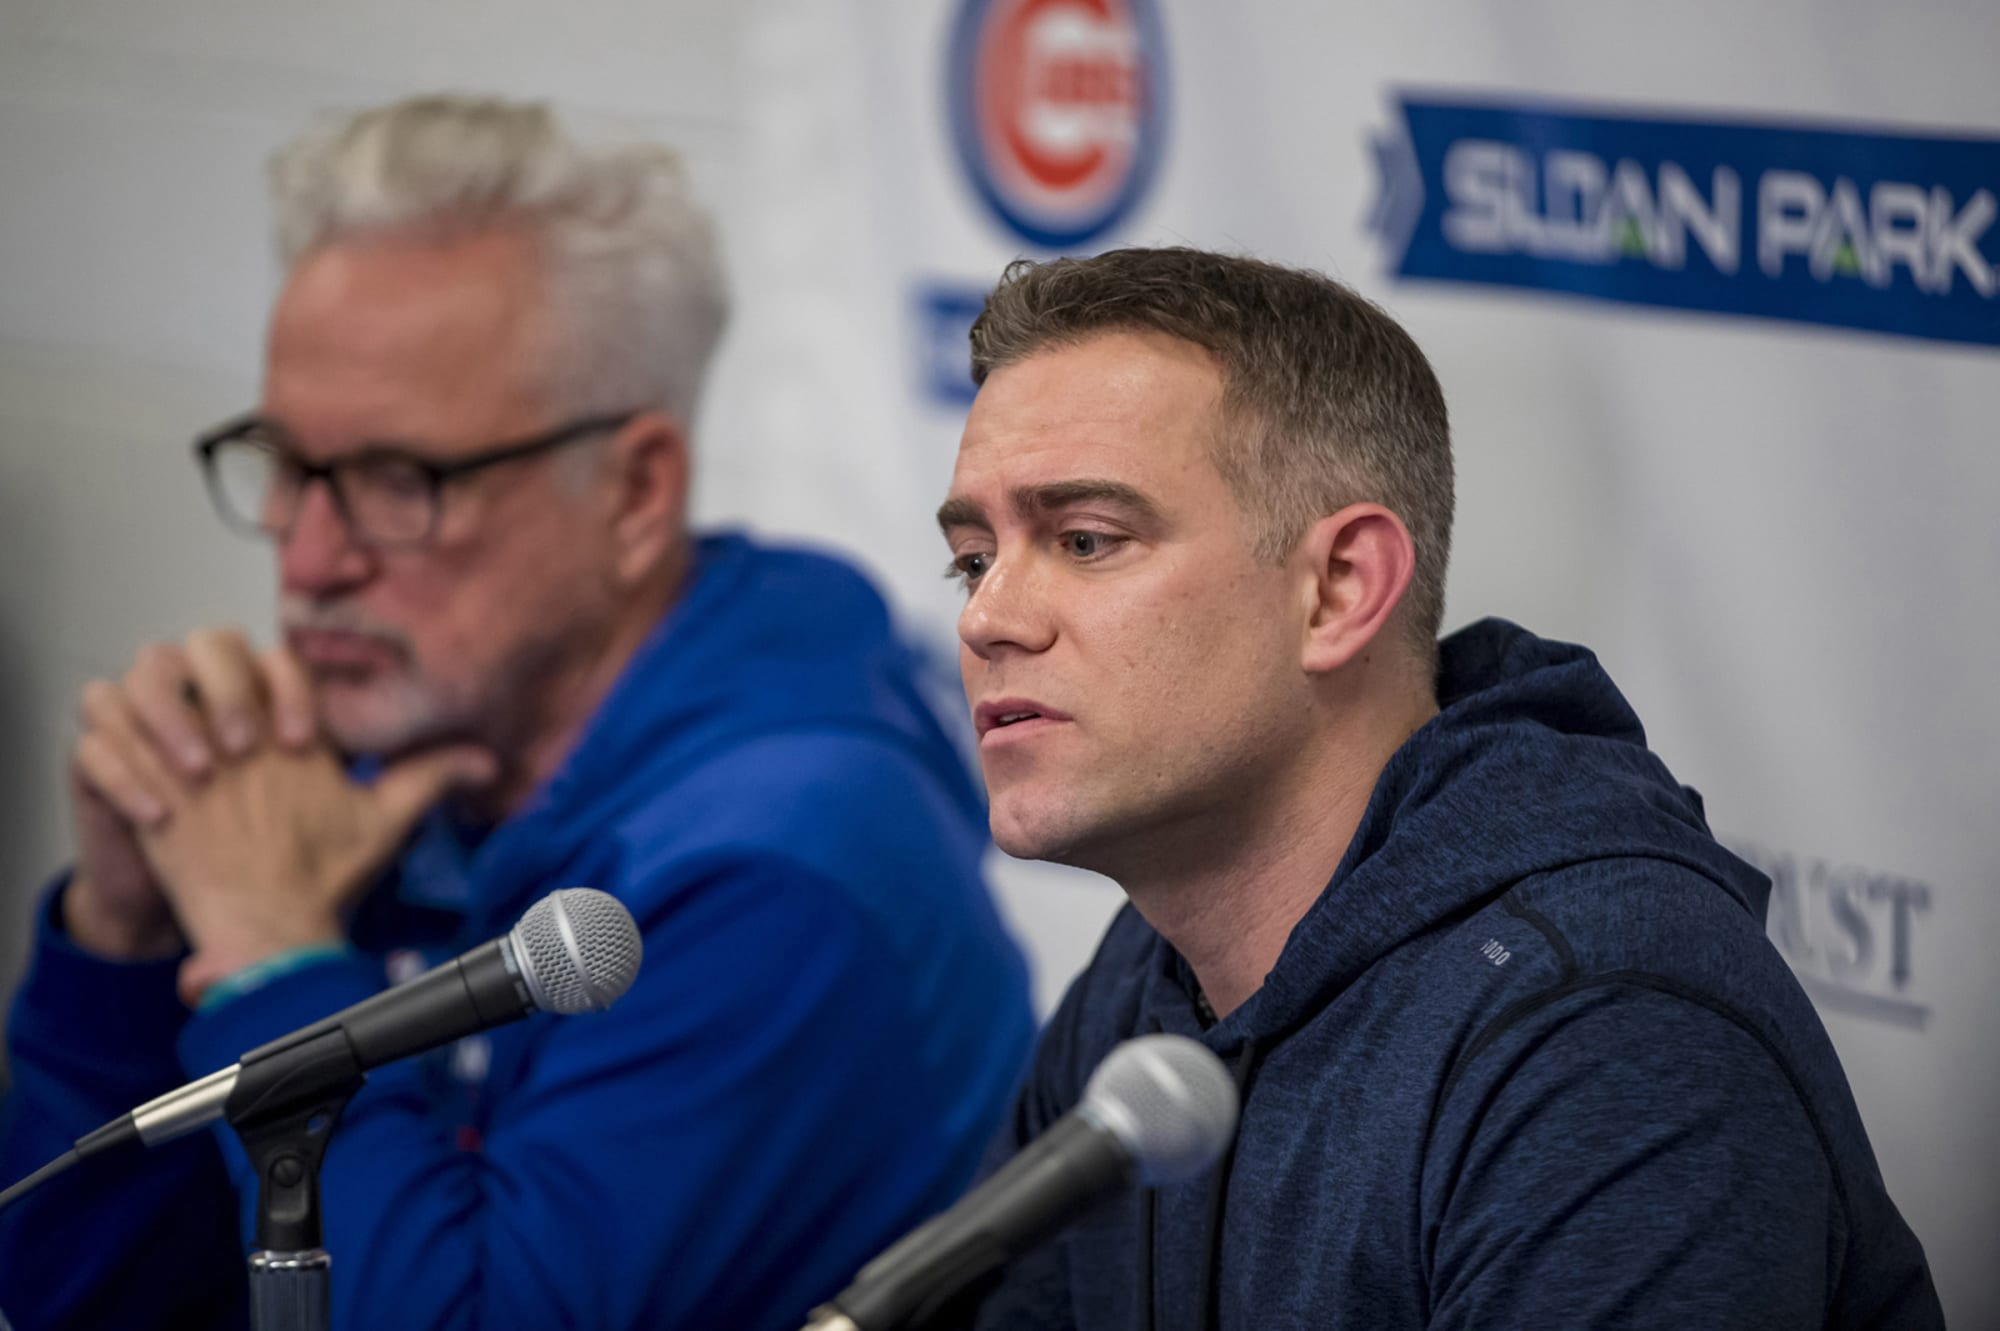 Photo of Cubs executive Theo Epstein shows support for Black Lives Matter